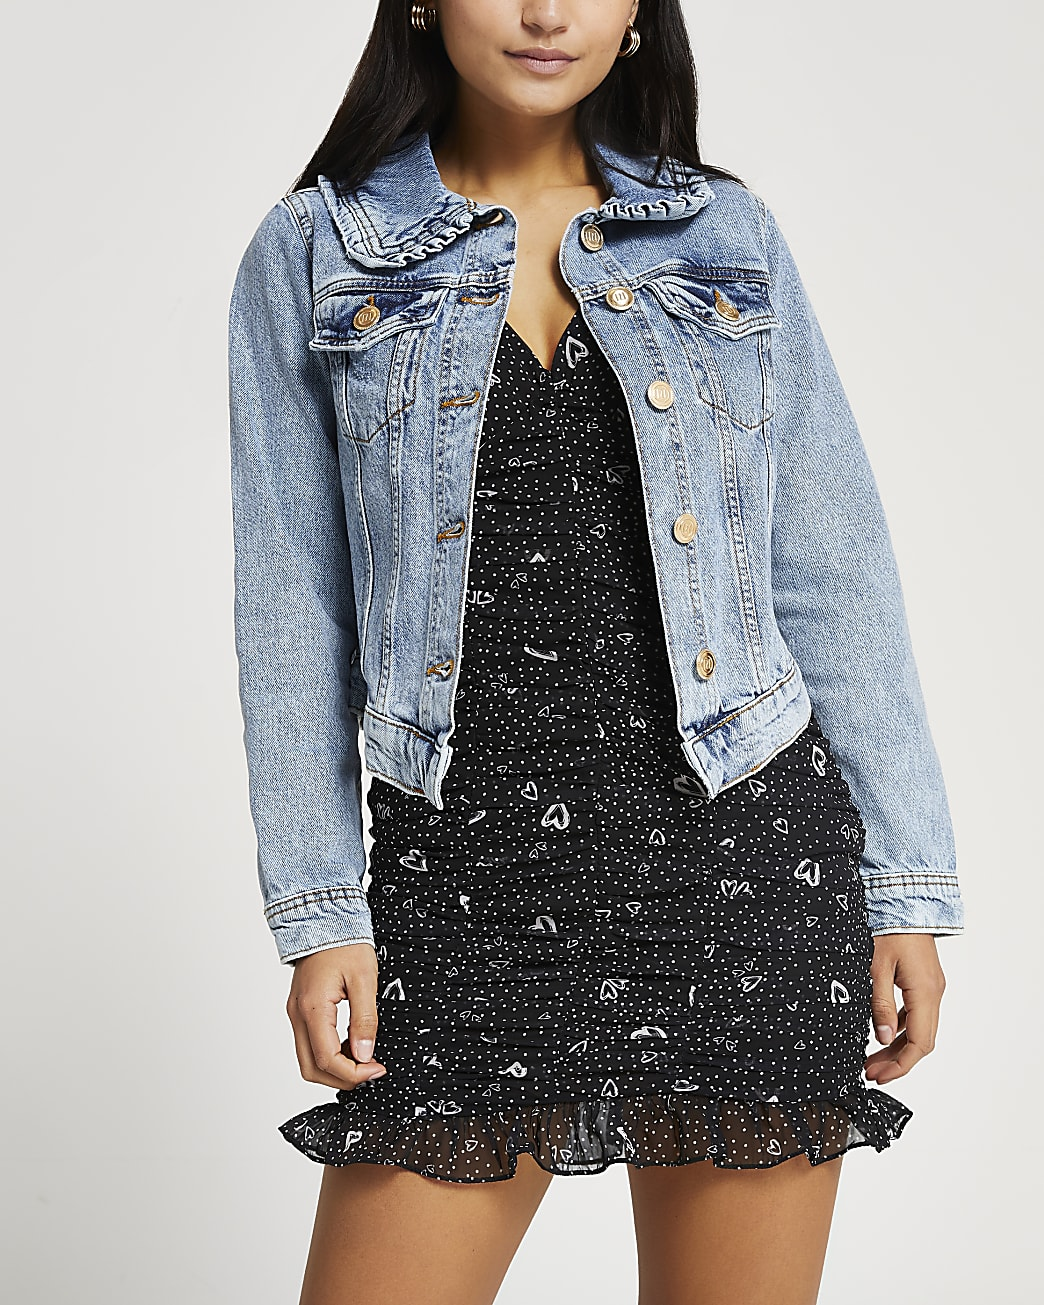 Petite blue denim collared fitted jacket